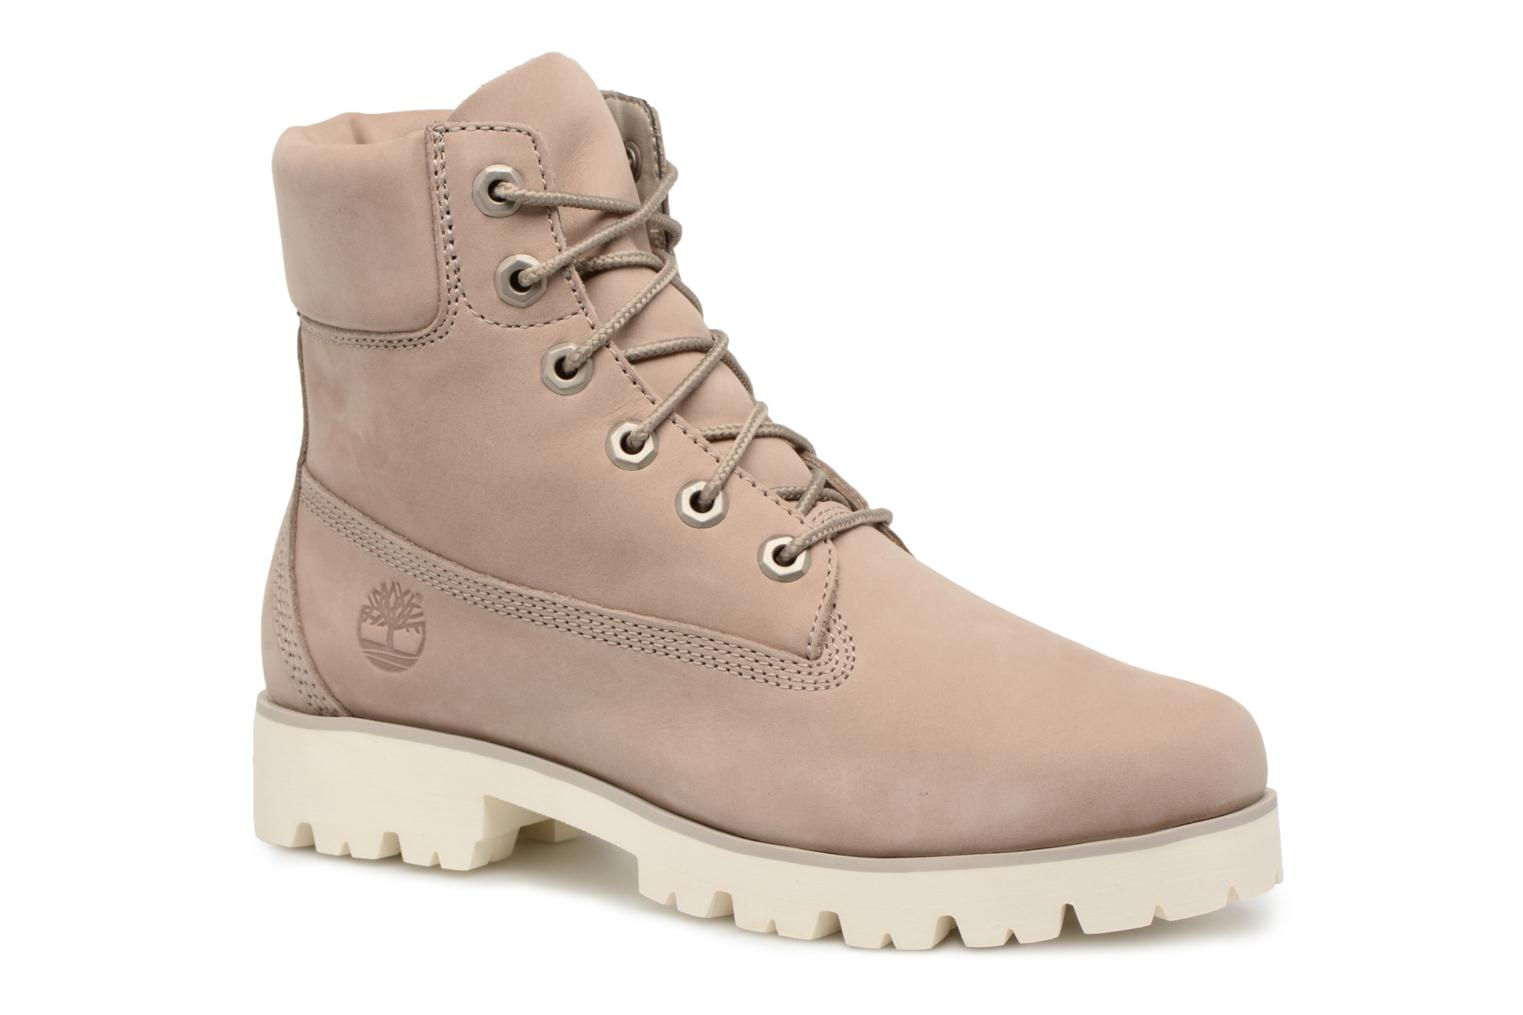 Heritage Lite 6in Boot Pure Cashmere Nubuck